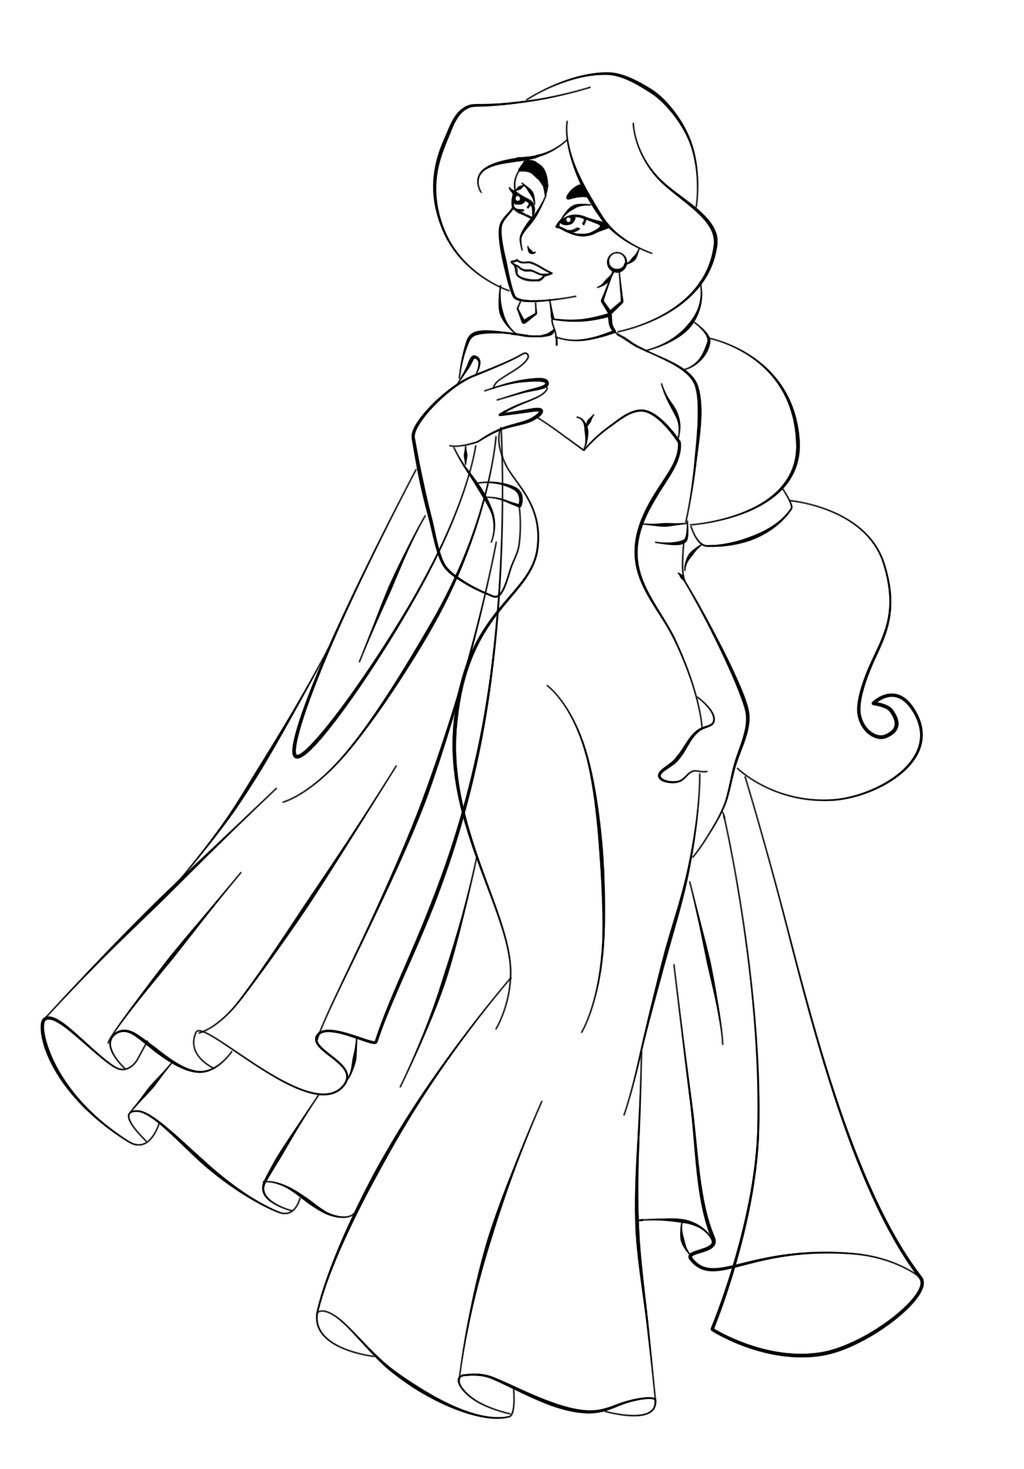 jasmine coloring pictures jasmine coloring page coloring home pictures jasmine coloring